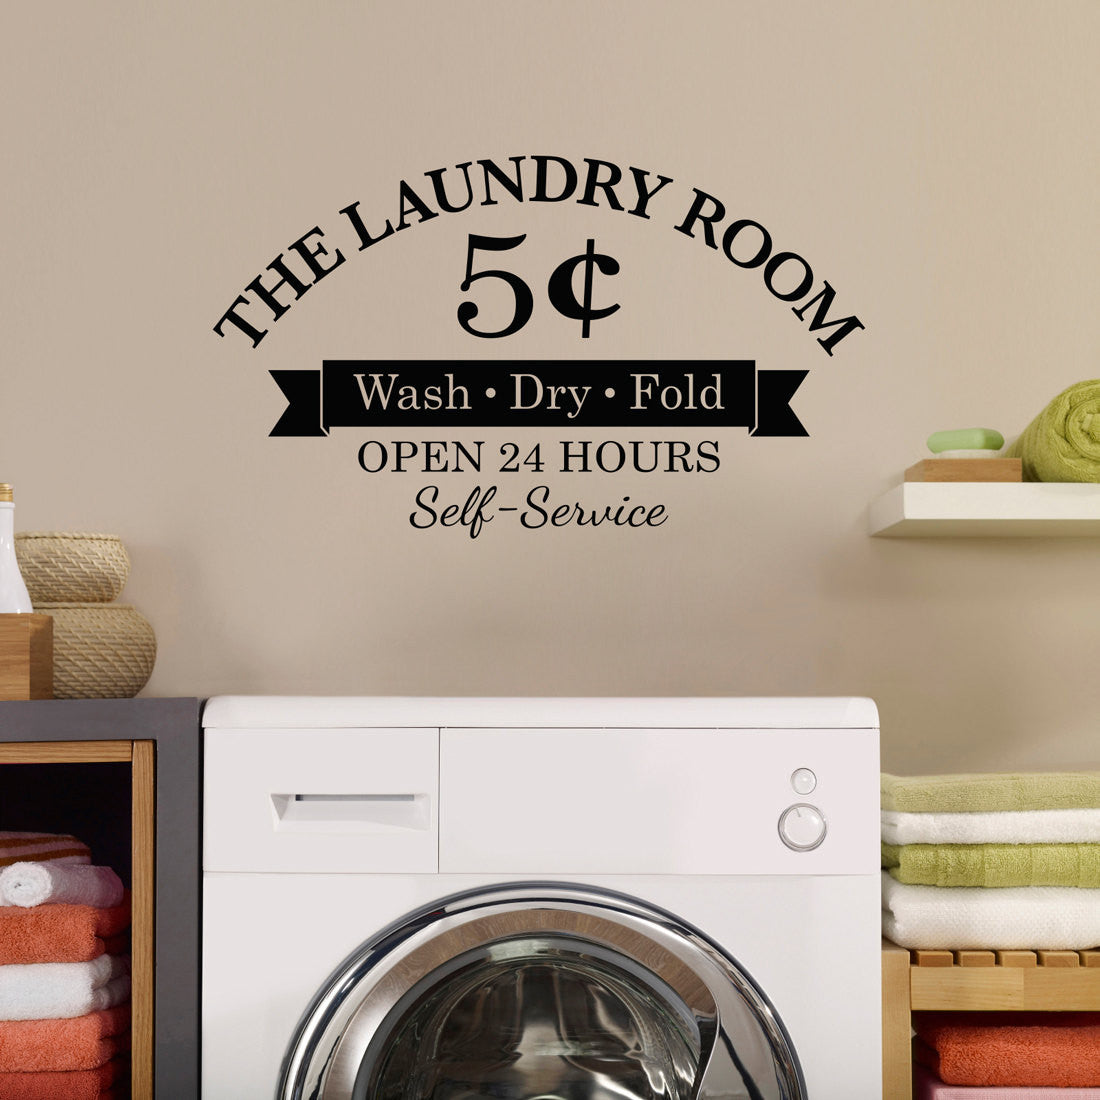 The Laundry Room 5 Cents Wall Decal   Medium Part 42